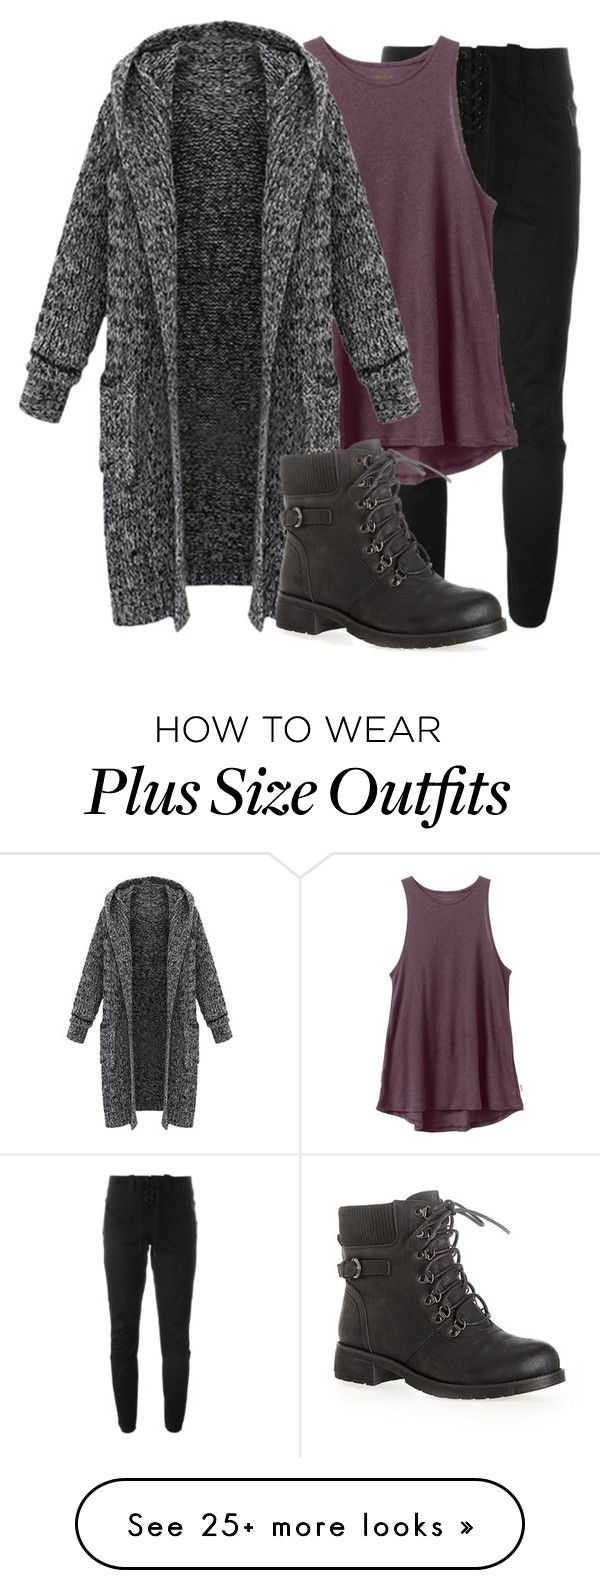 """Untitled #1543"" by emzyrox77 on Polyvore featuring Barbara Bui, RVCA and Avenue"